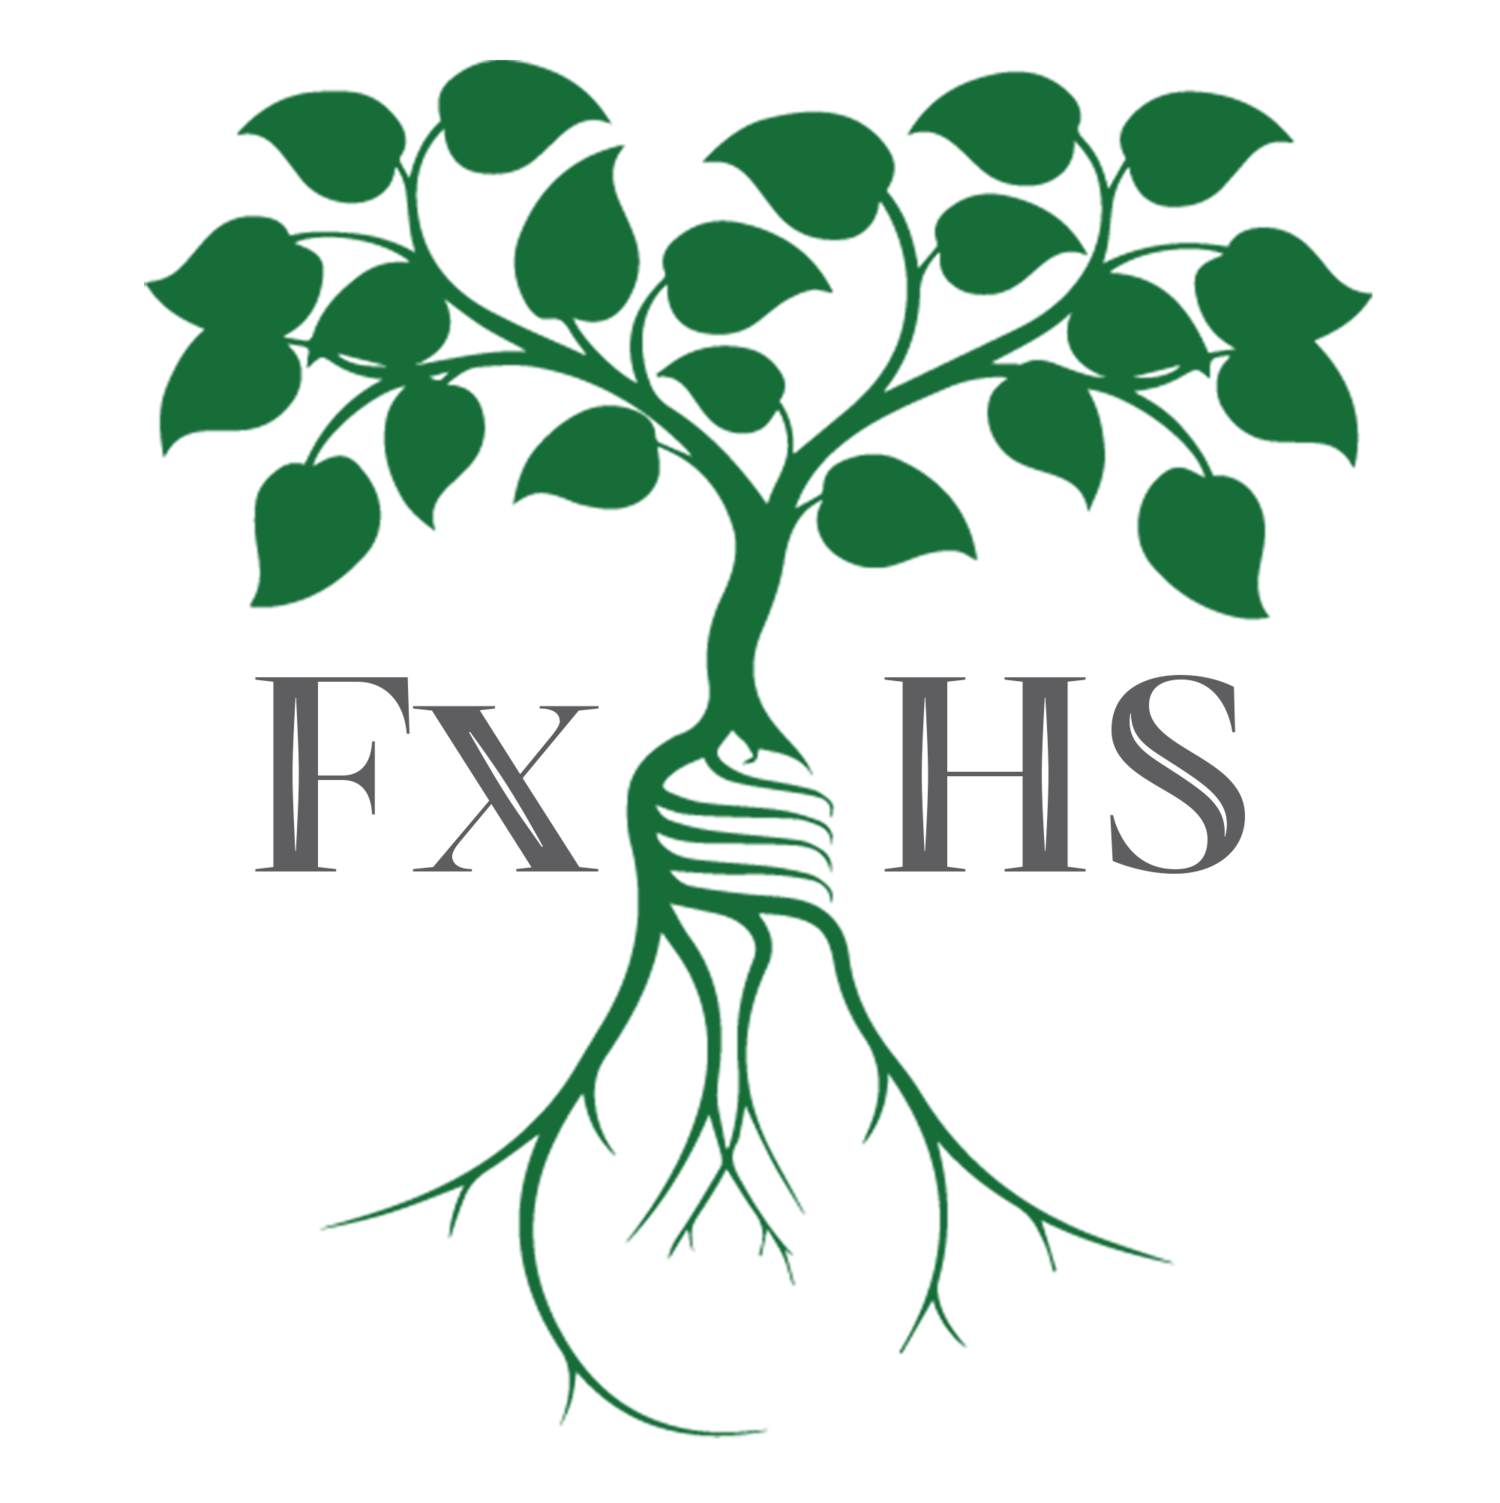 FX Health Solutions